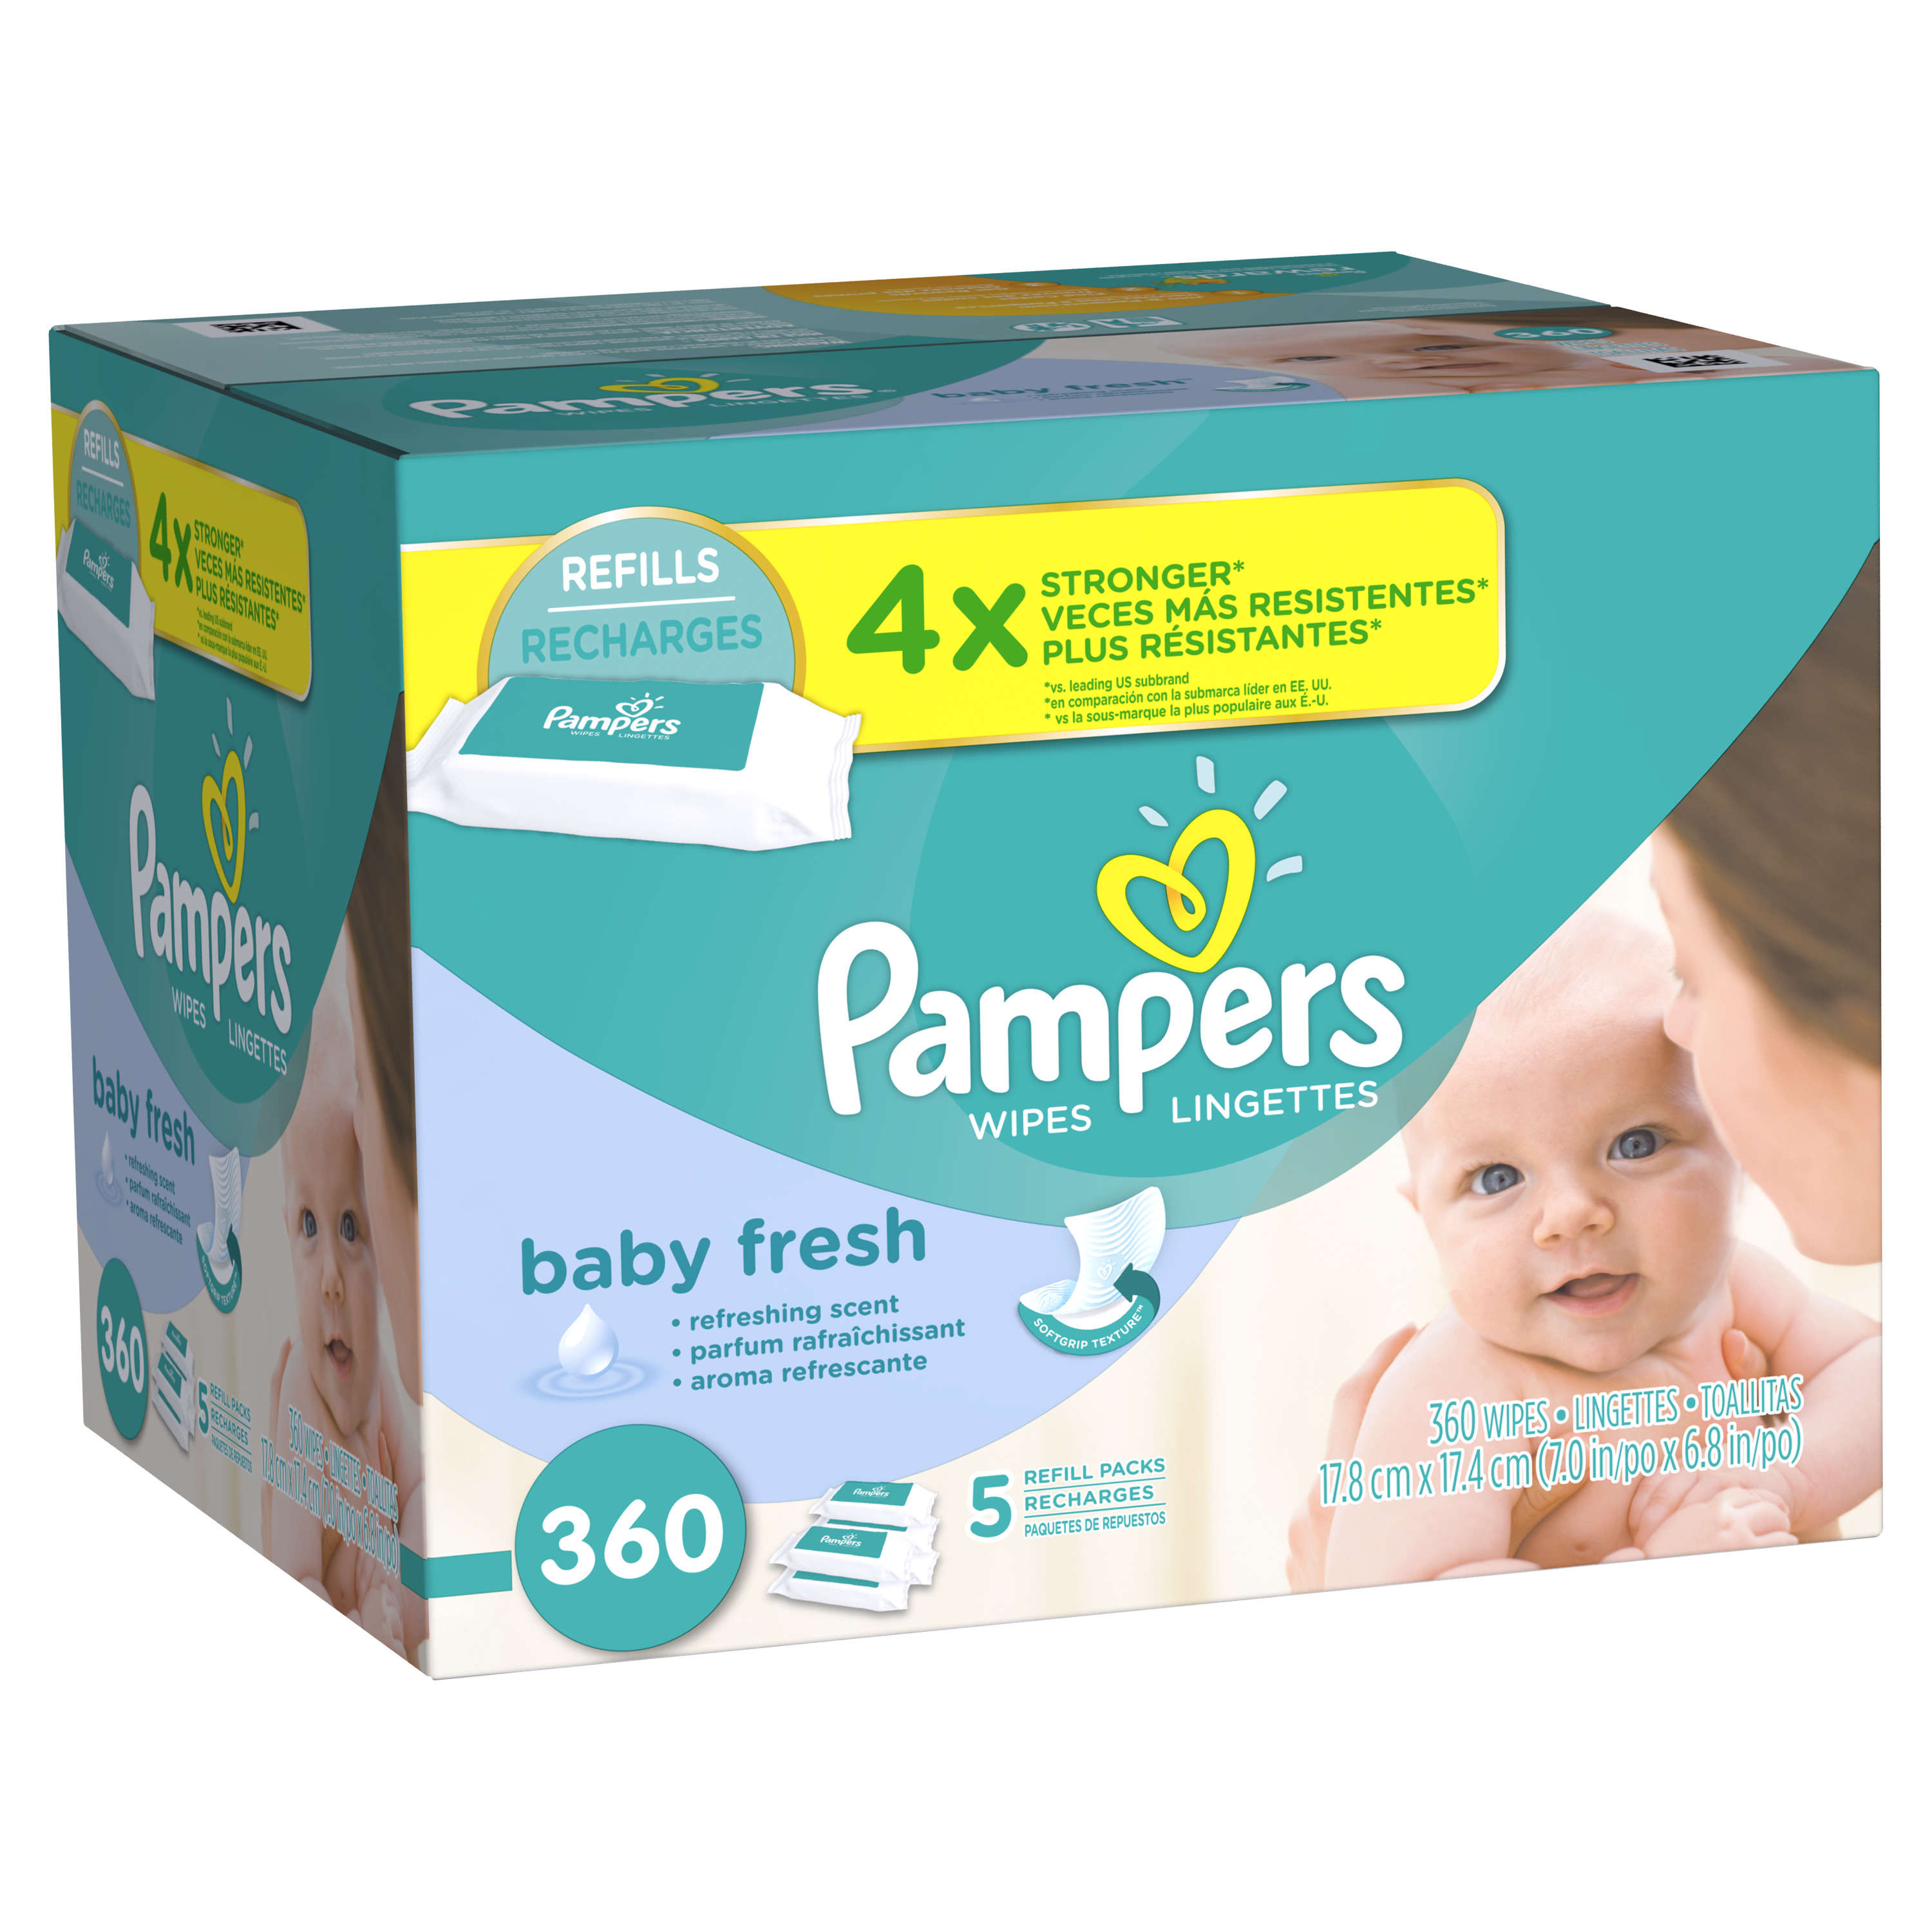 Pampers Baby Wipes Baby Fresh 5X Refill 360 count